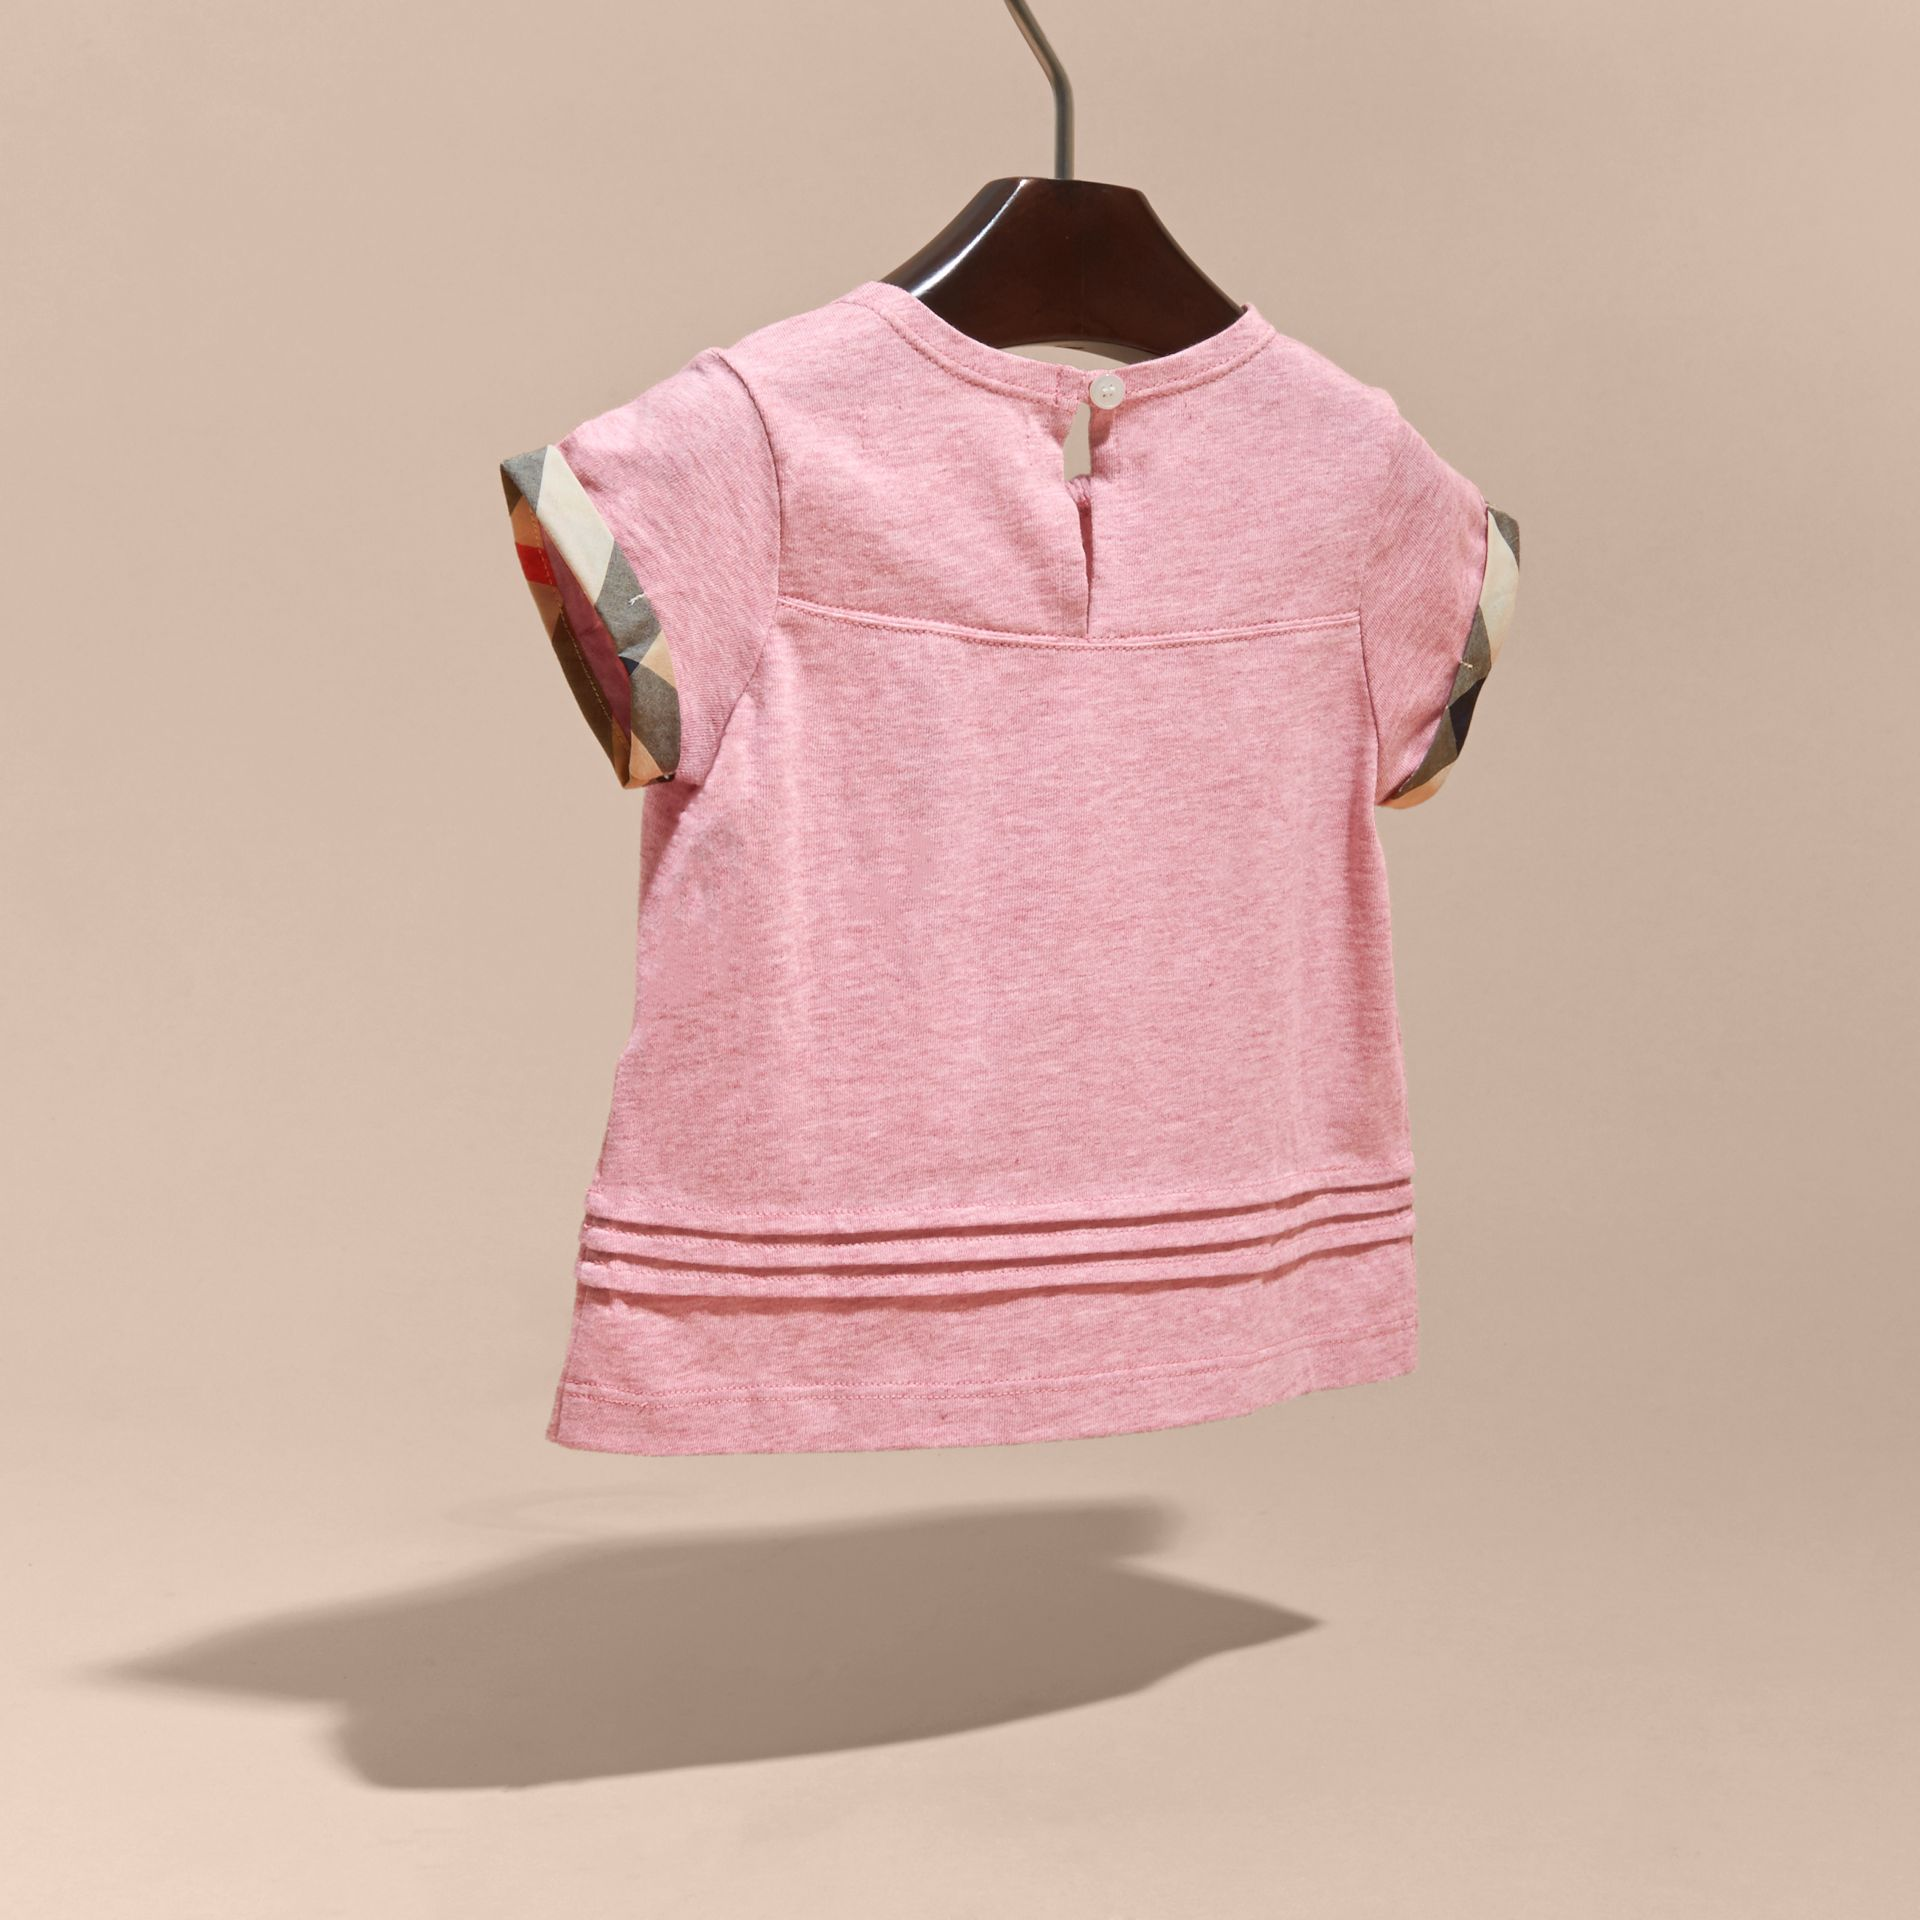 Pleat and Check Detail Cotton T-shirt in Light Copper Pink Melange | Burberry Canada - gallery image 4